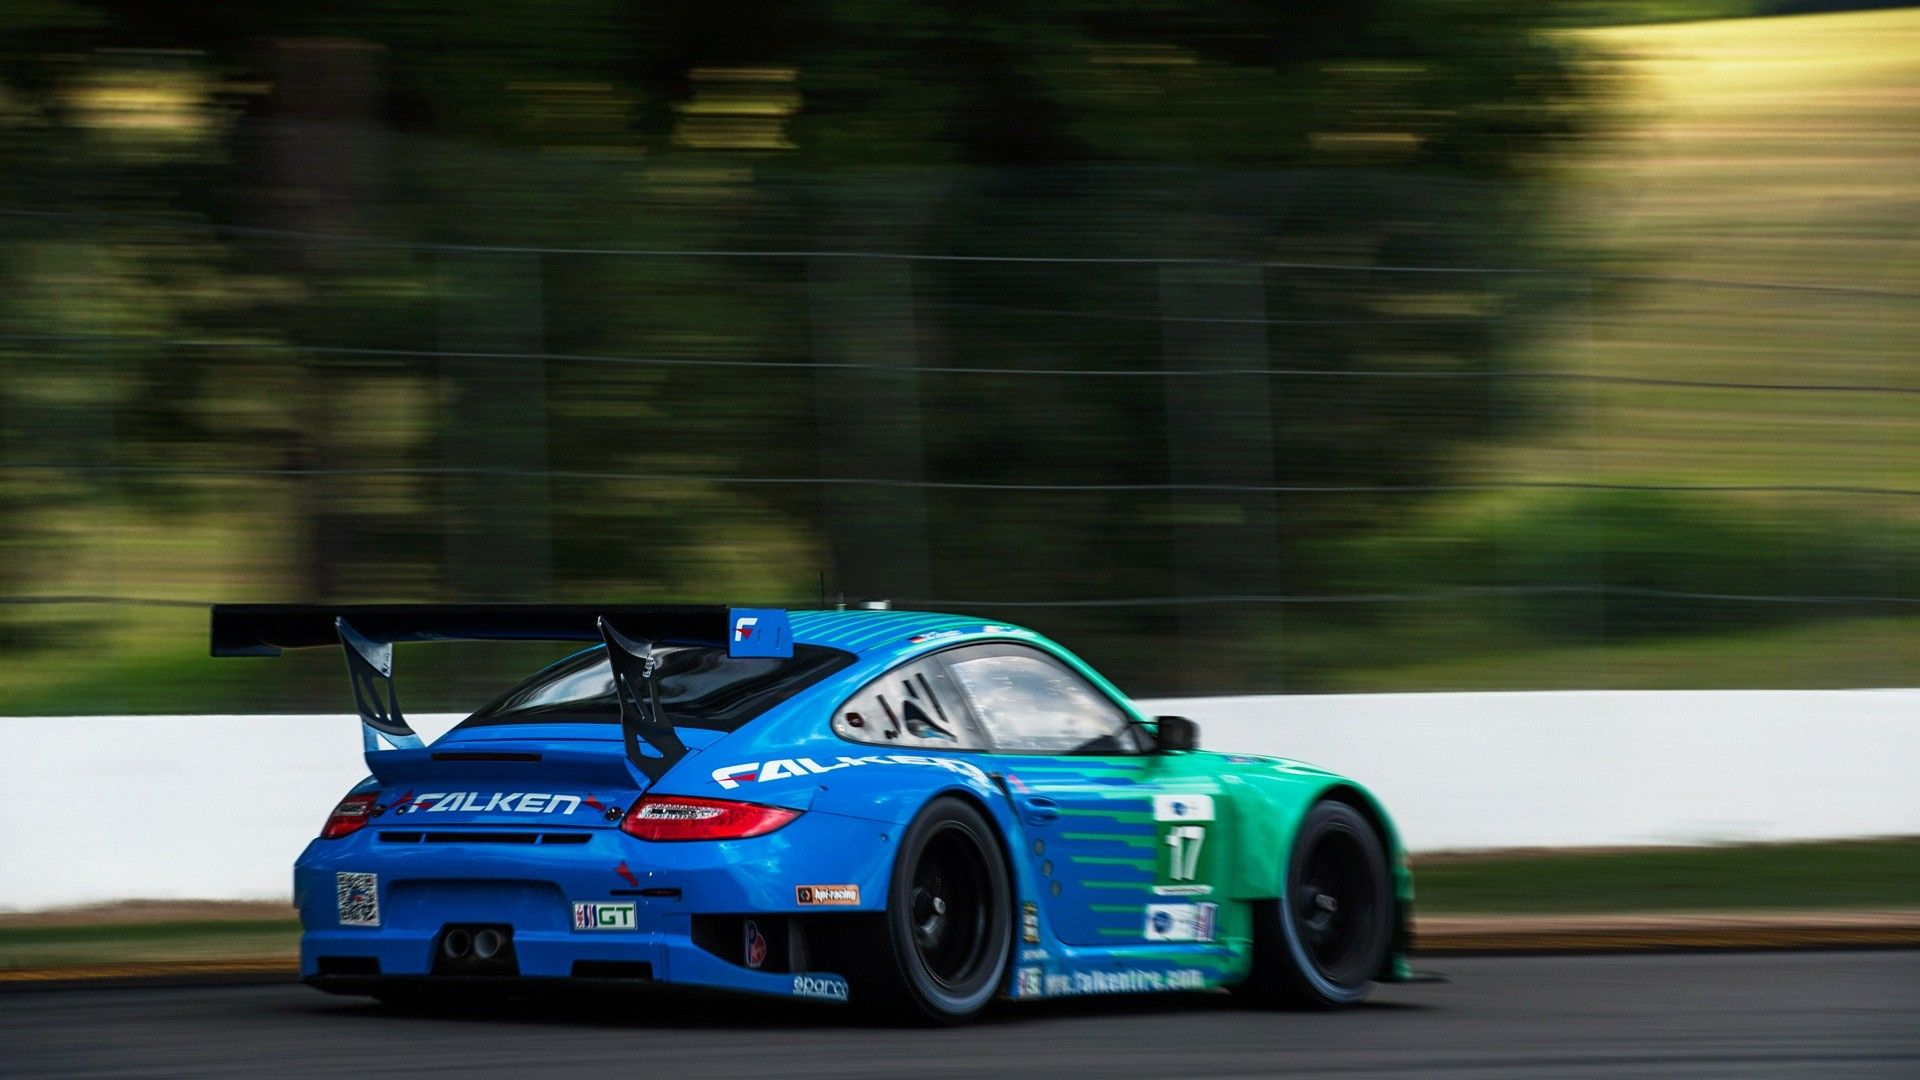 Porsche Racing Car Hd Wallpapers Download My Dream Garage